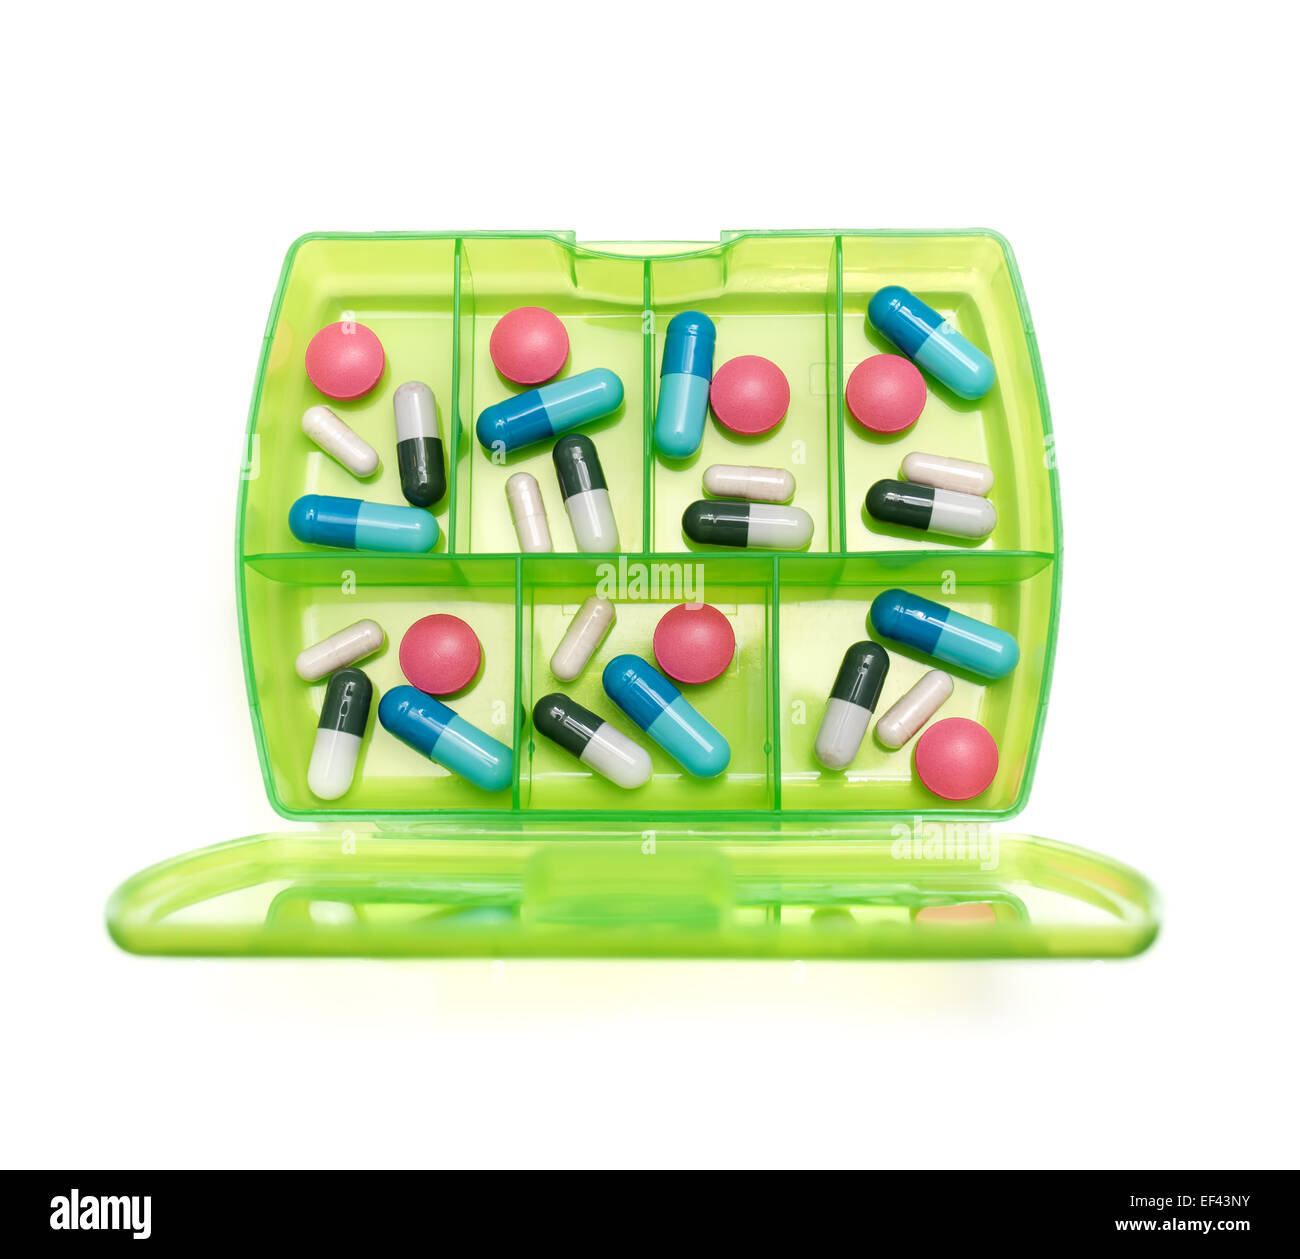 Box with a weekly dosage of various drugs on a white background. - Stock Image